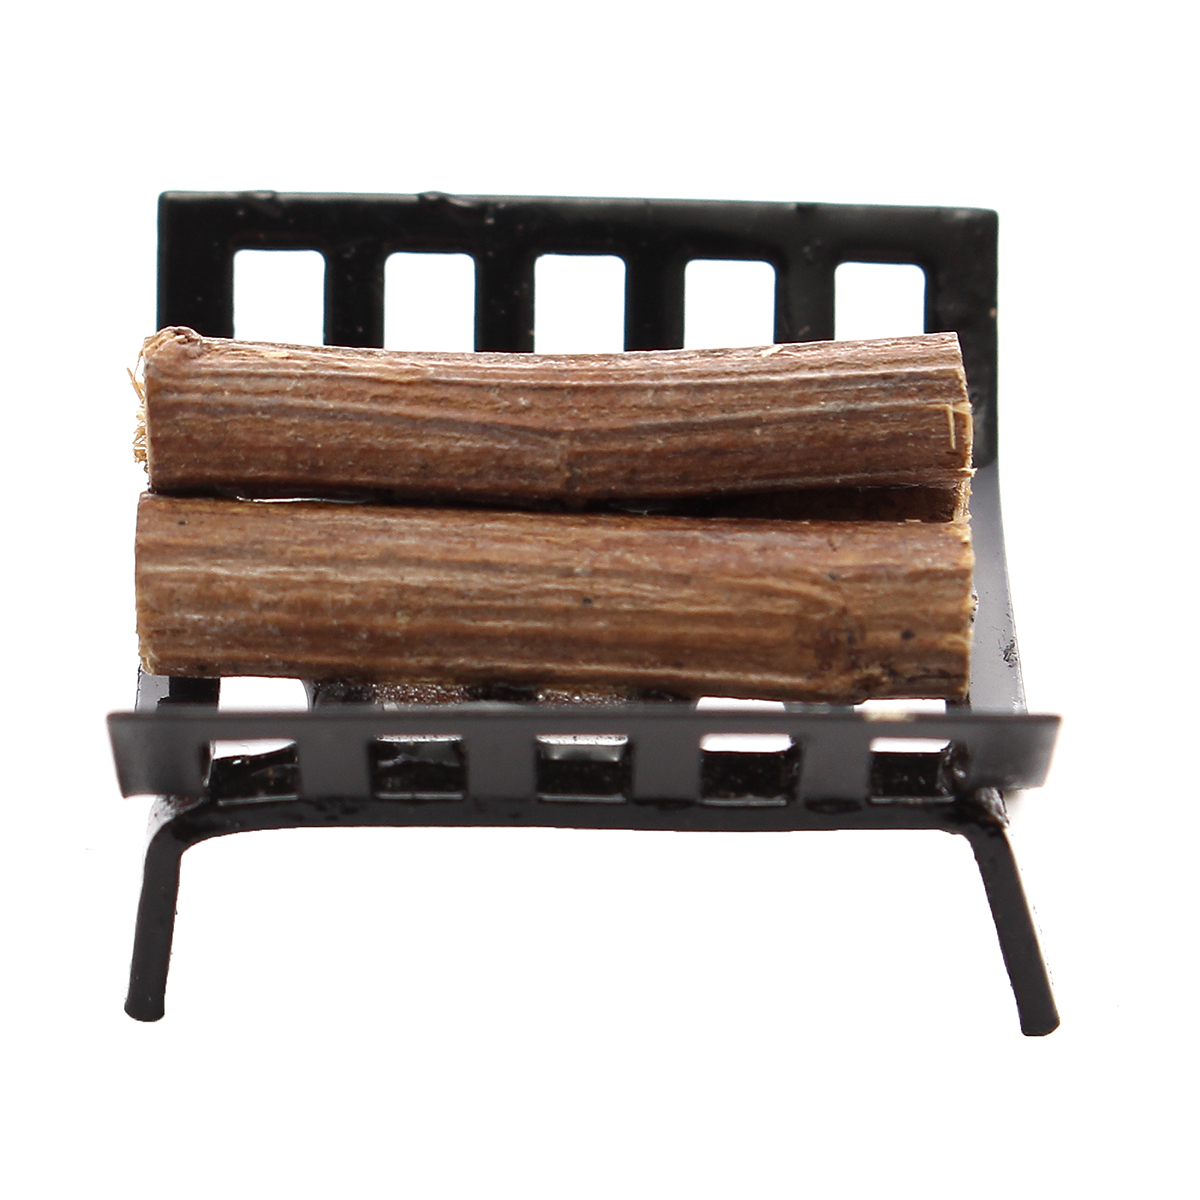 NEW Firewood Dollhouse Miniature Kitchen Furniture Accessories For Home Decor